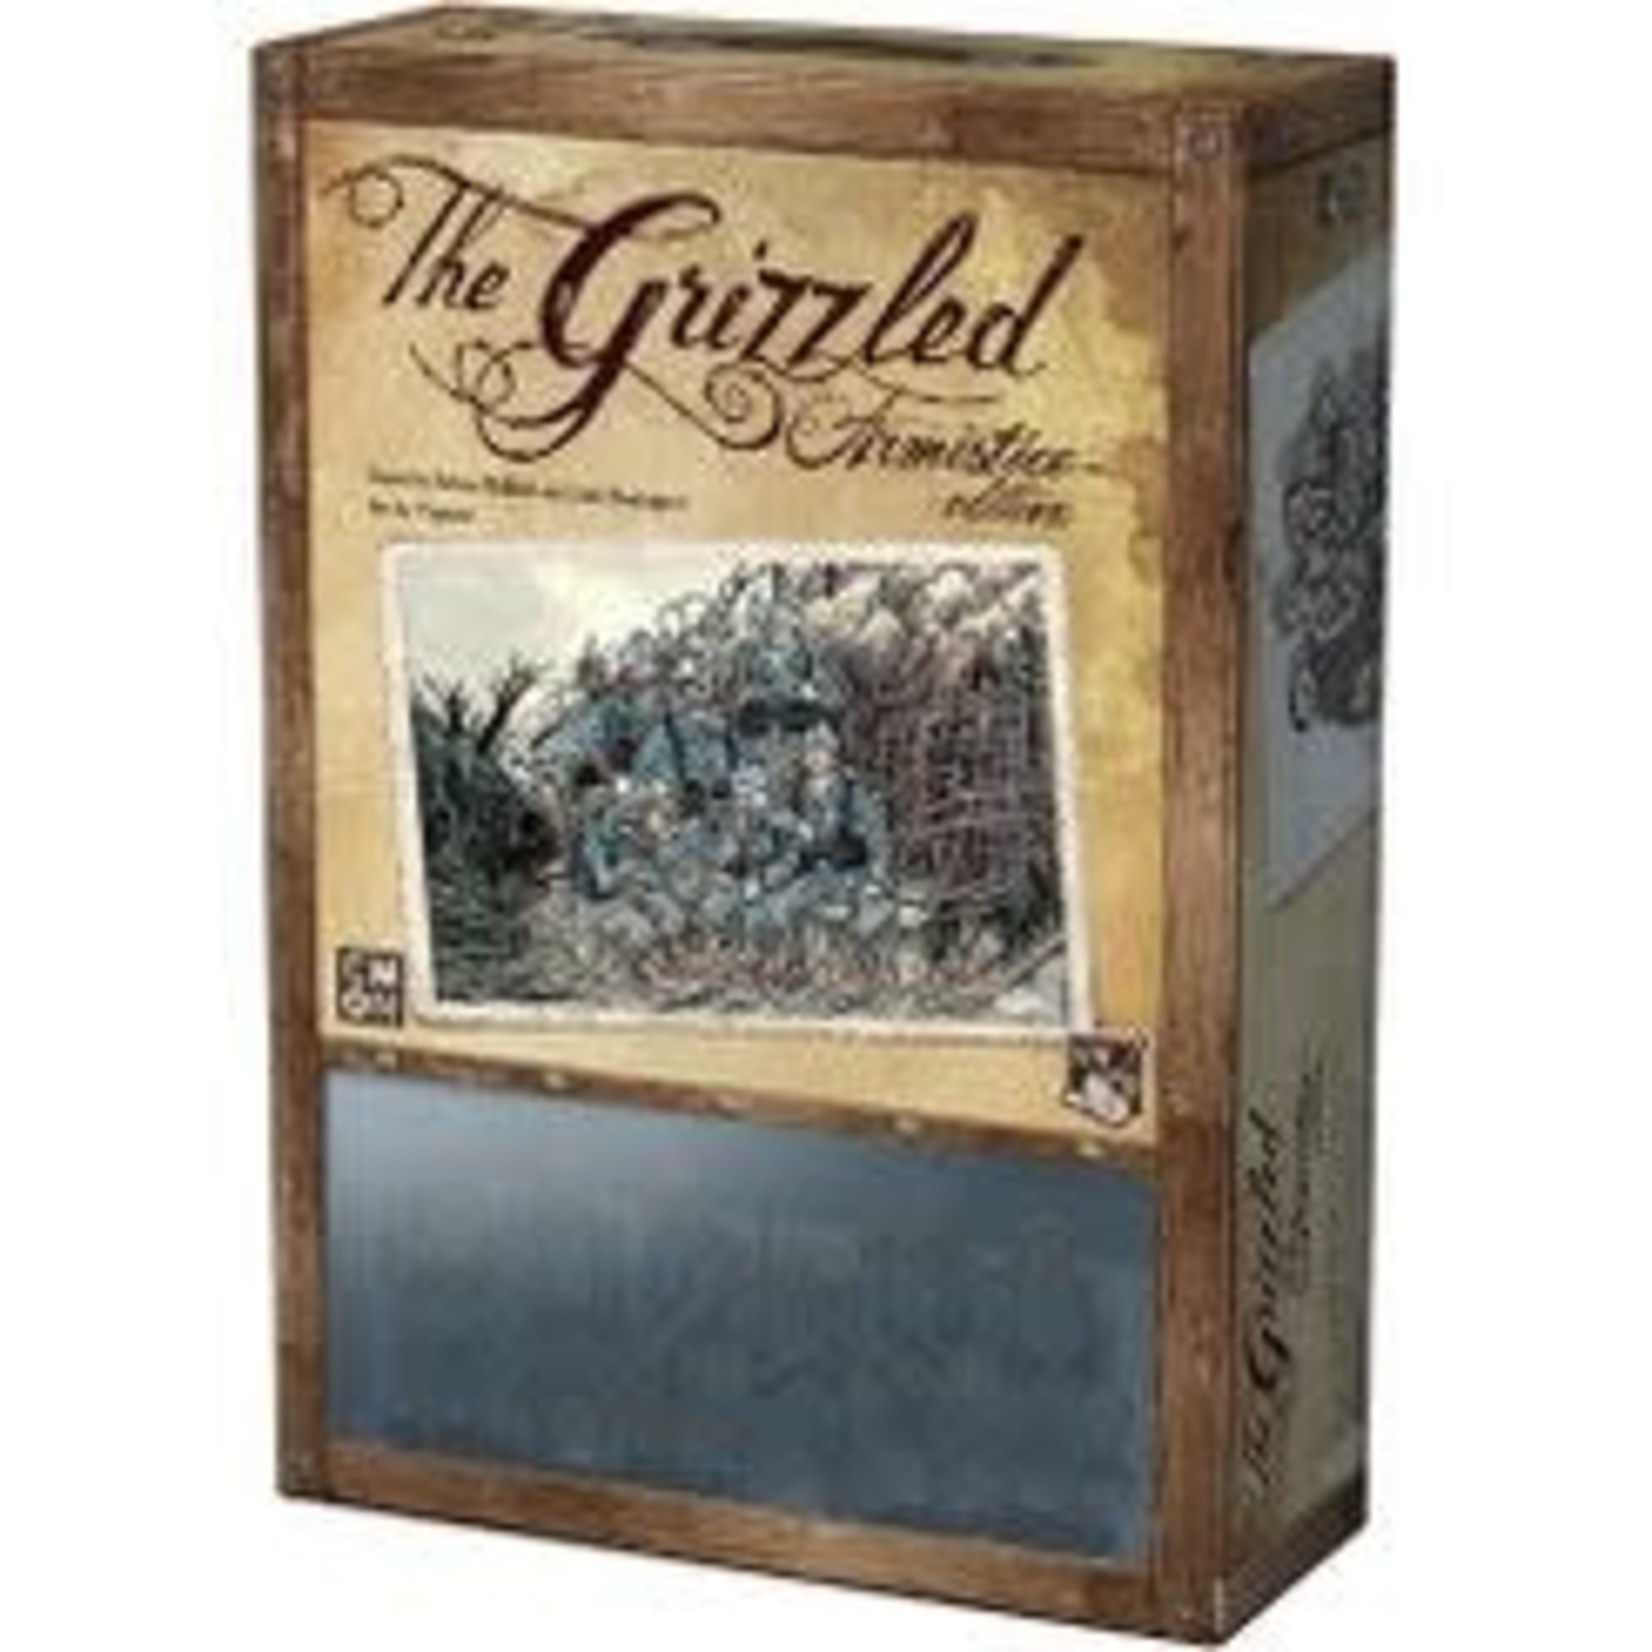 The Grizzled: Armistice Edition Card Game